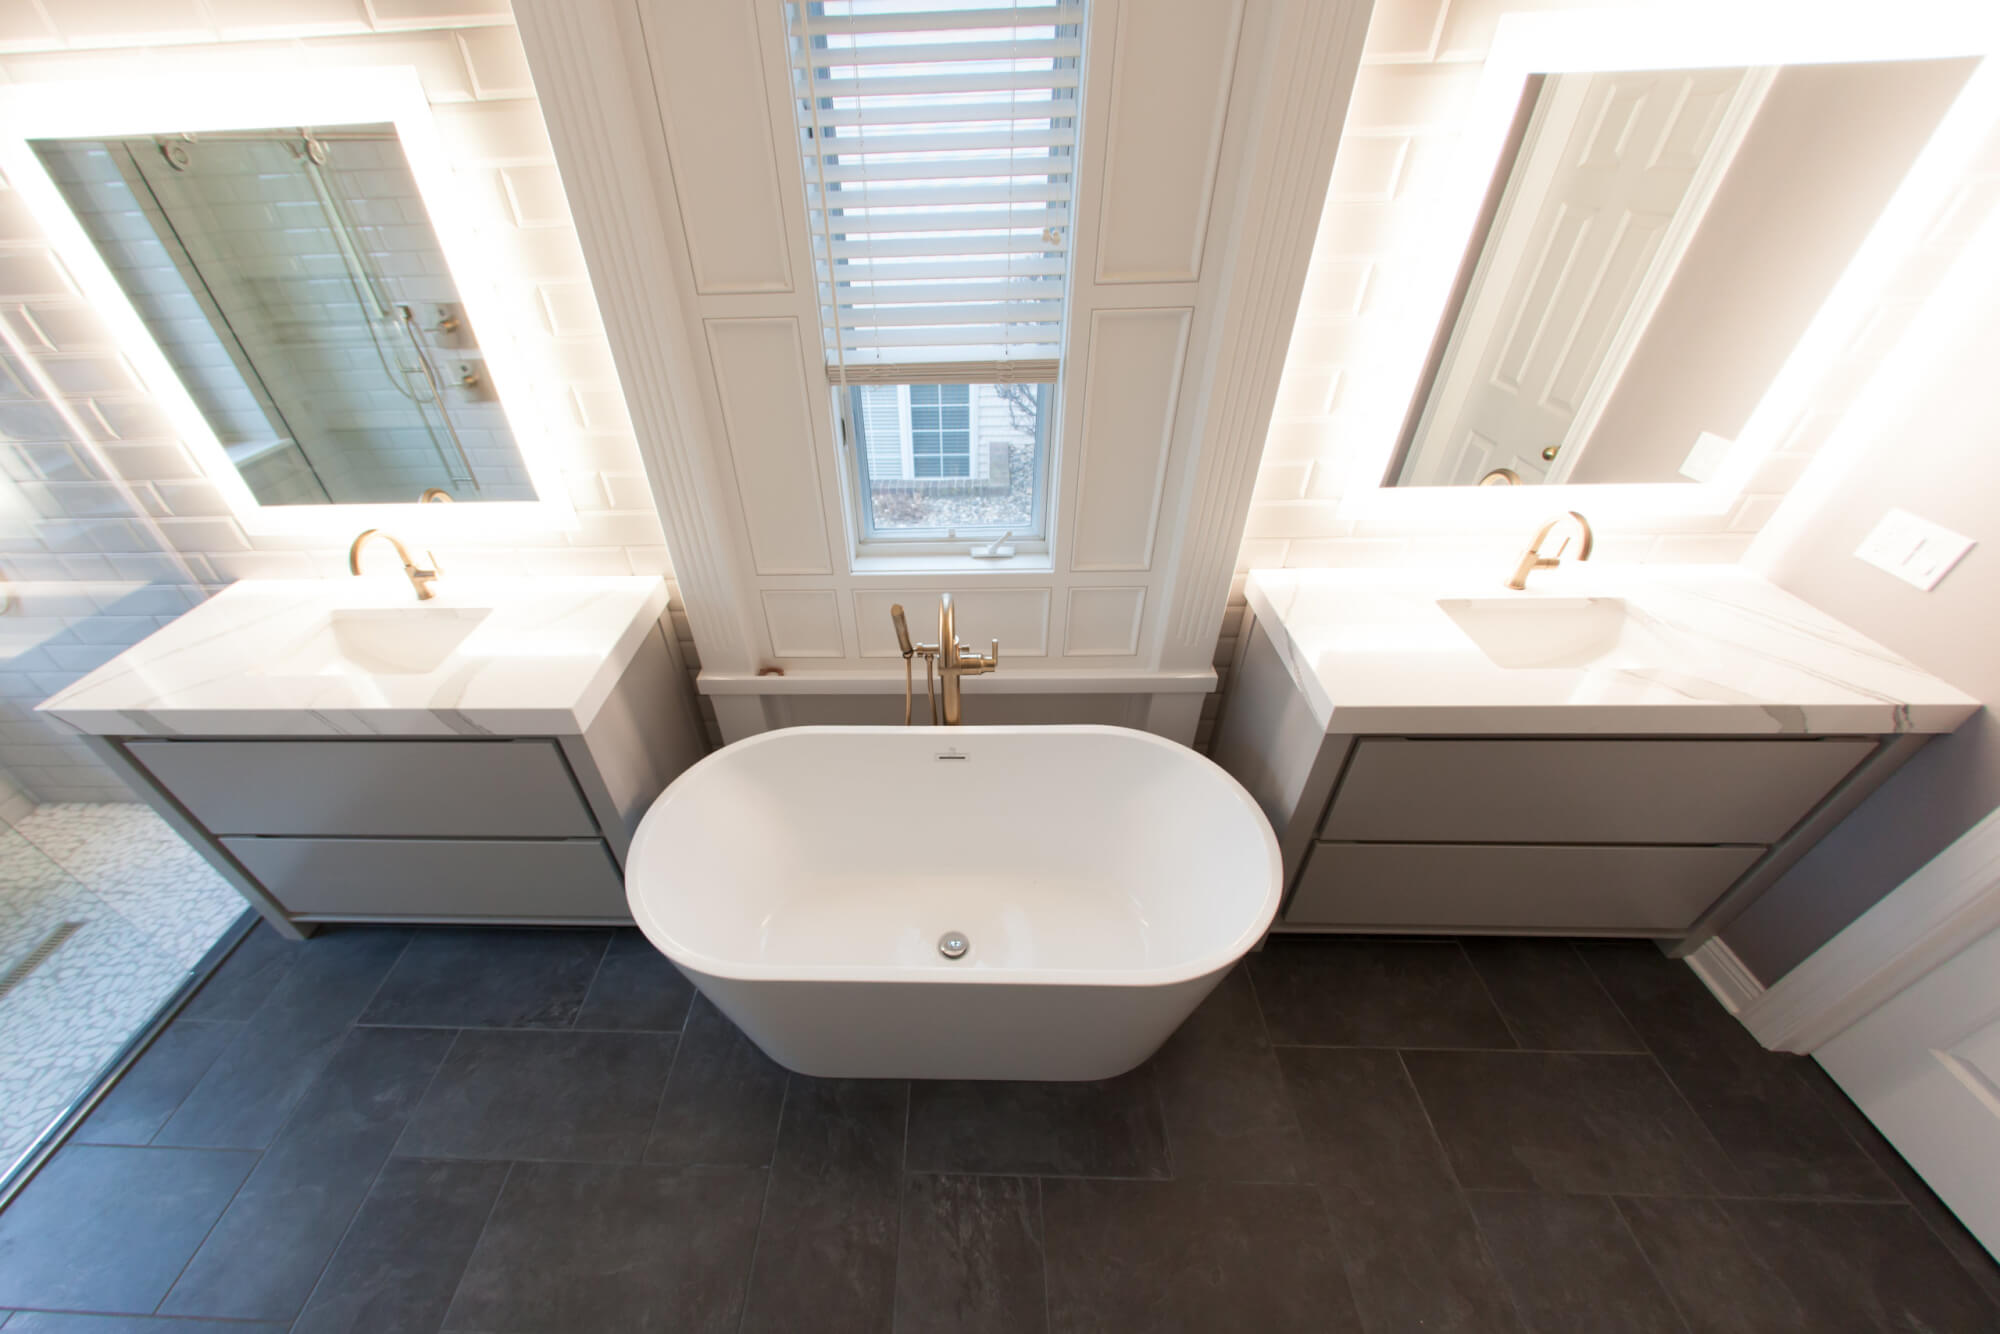 top view of a drop-in bathtub placed between a his and her vanity set